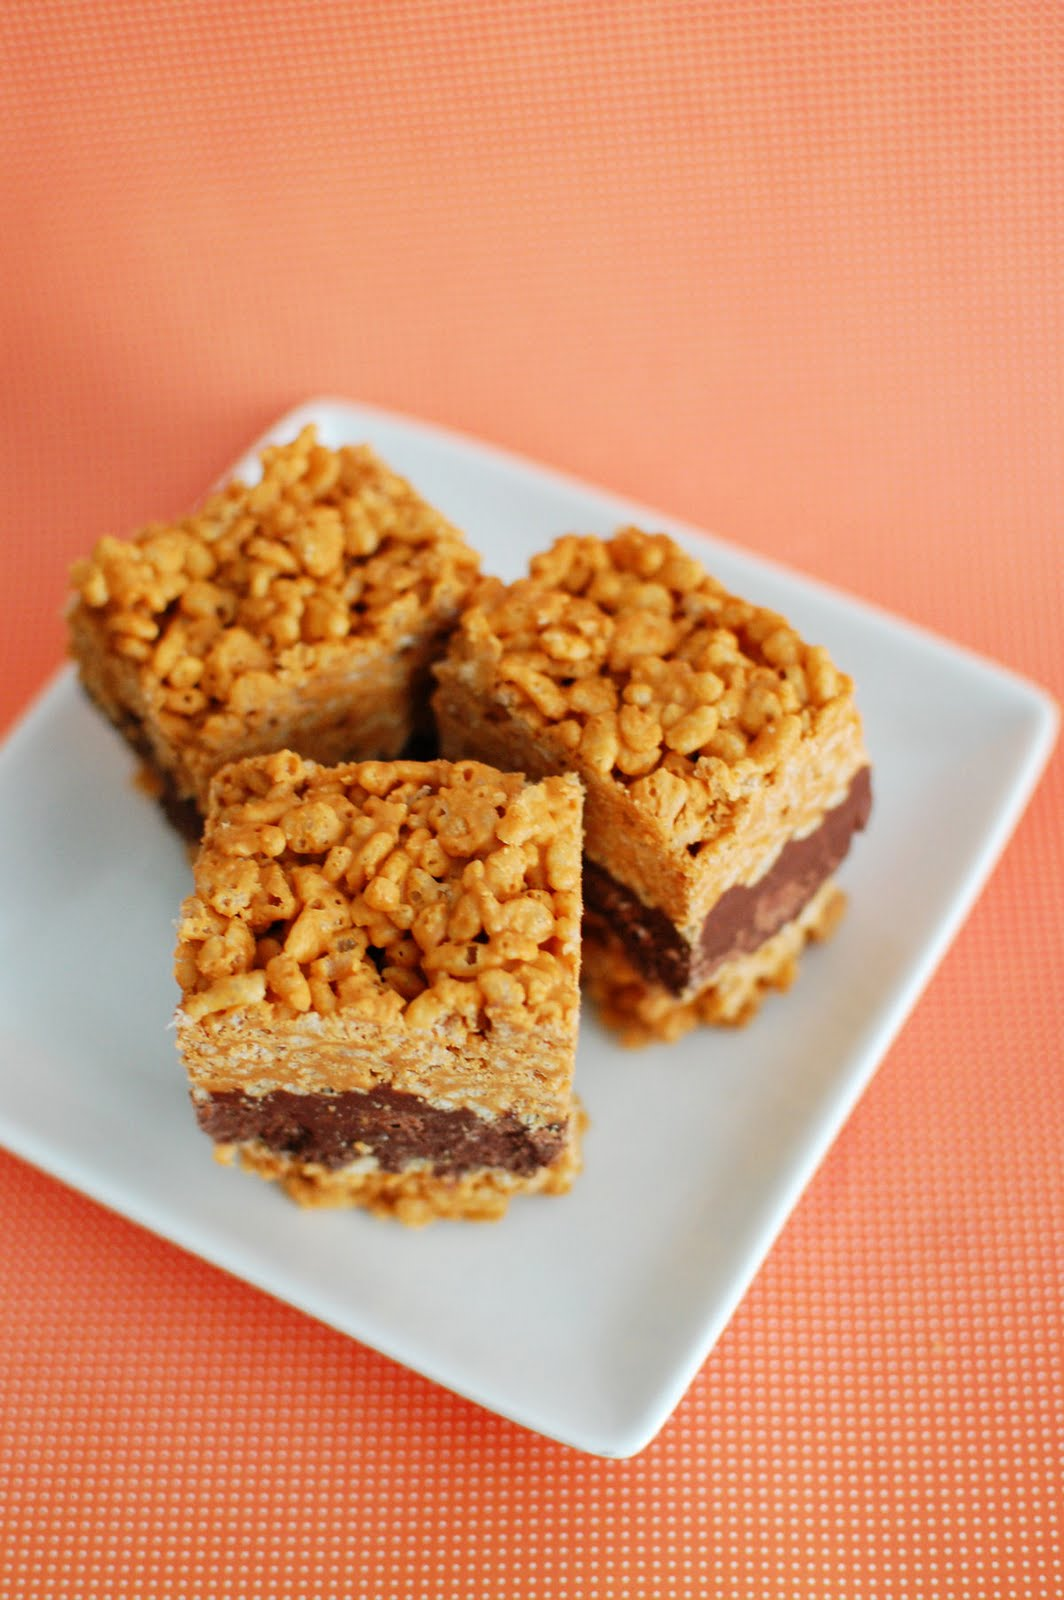 Amped Up Rice Krispies Treats | Beantown Baker